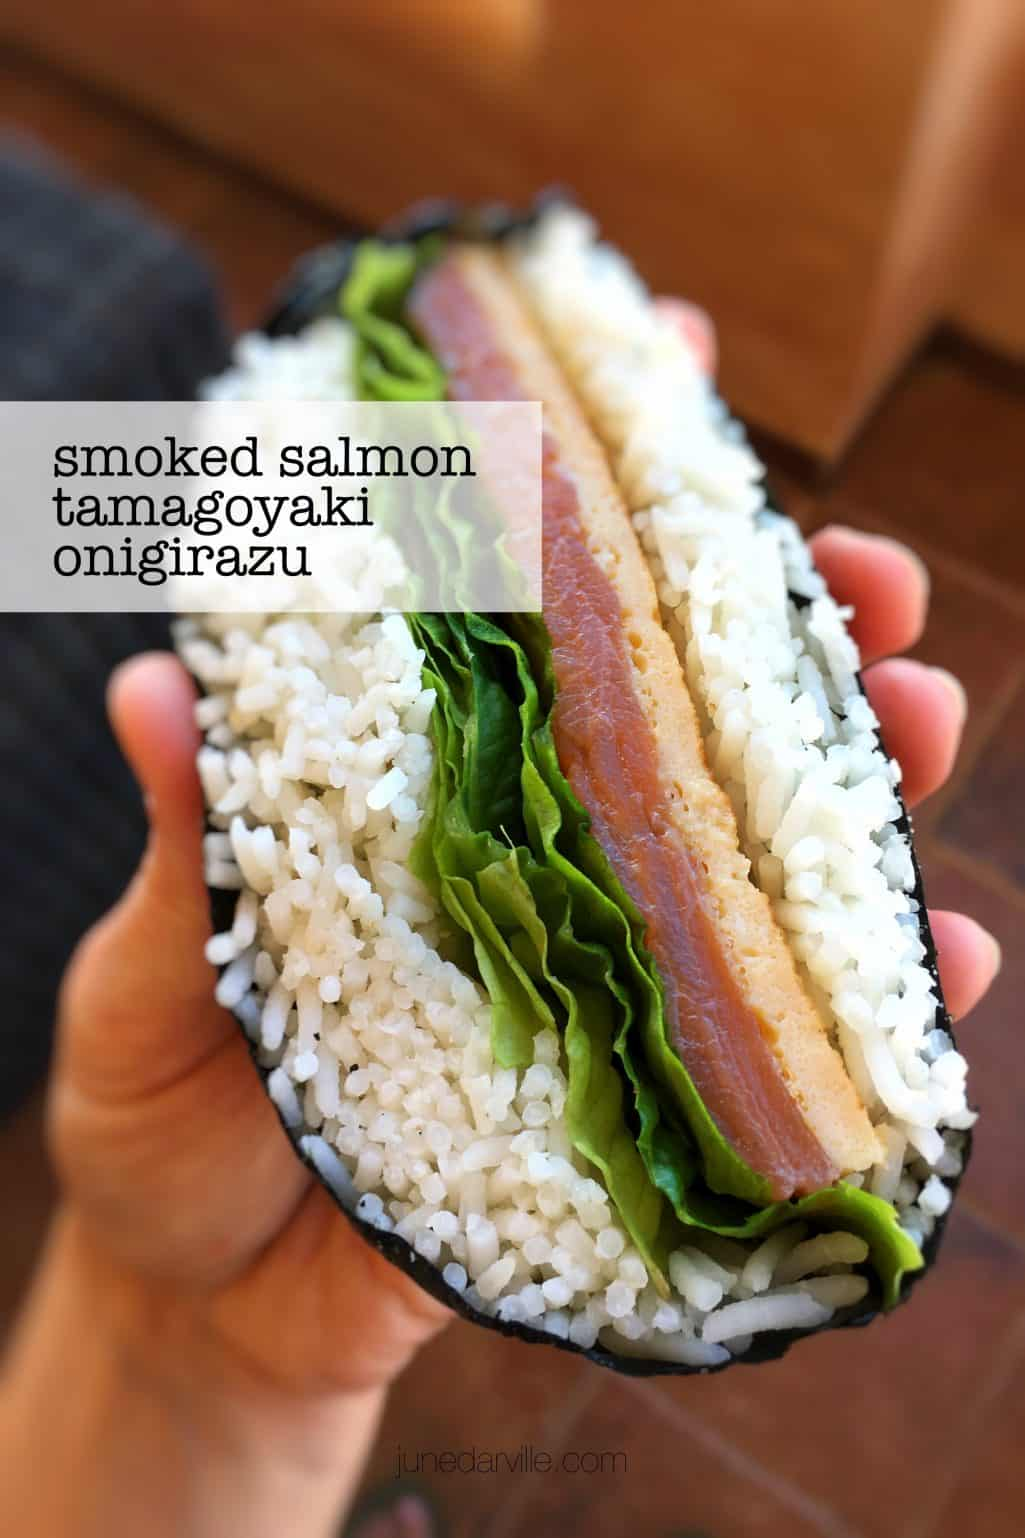 Smoked salmon onigirazu recipe simple tasty good a japanese rice and nori sandwich also known as onigirazu heres one of forumfinder Image collections